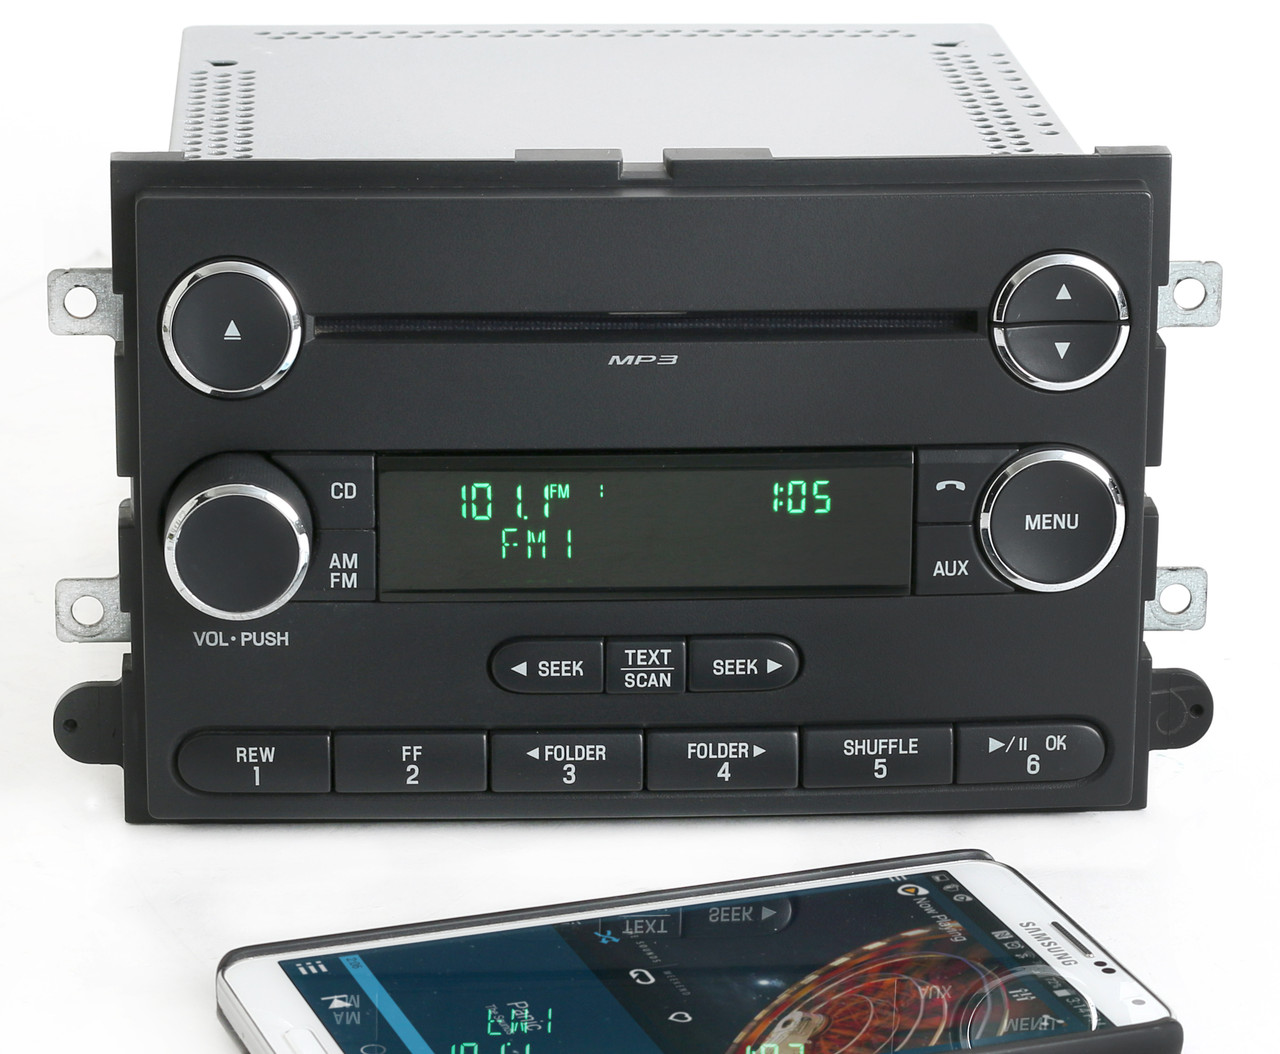 ford mustang 2008 09 am fm mp3 cd player radio w bluetooth. Black Bedroom Furniture Sets. Home Design Ideas